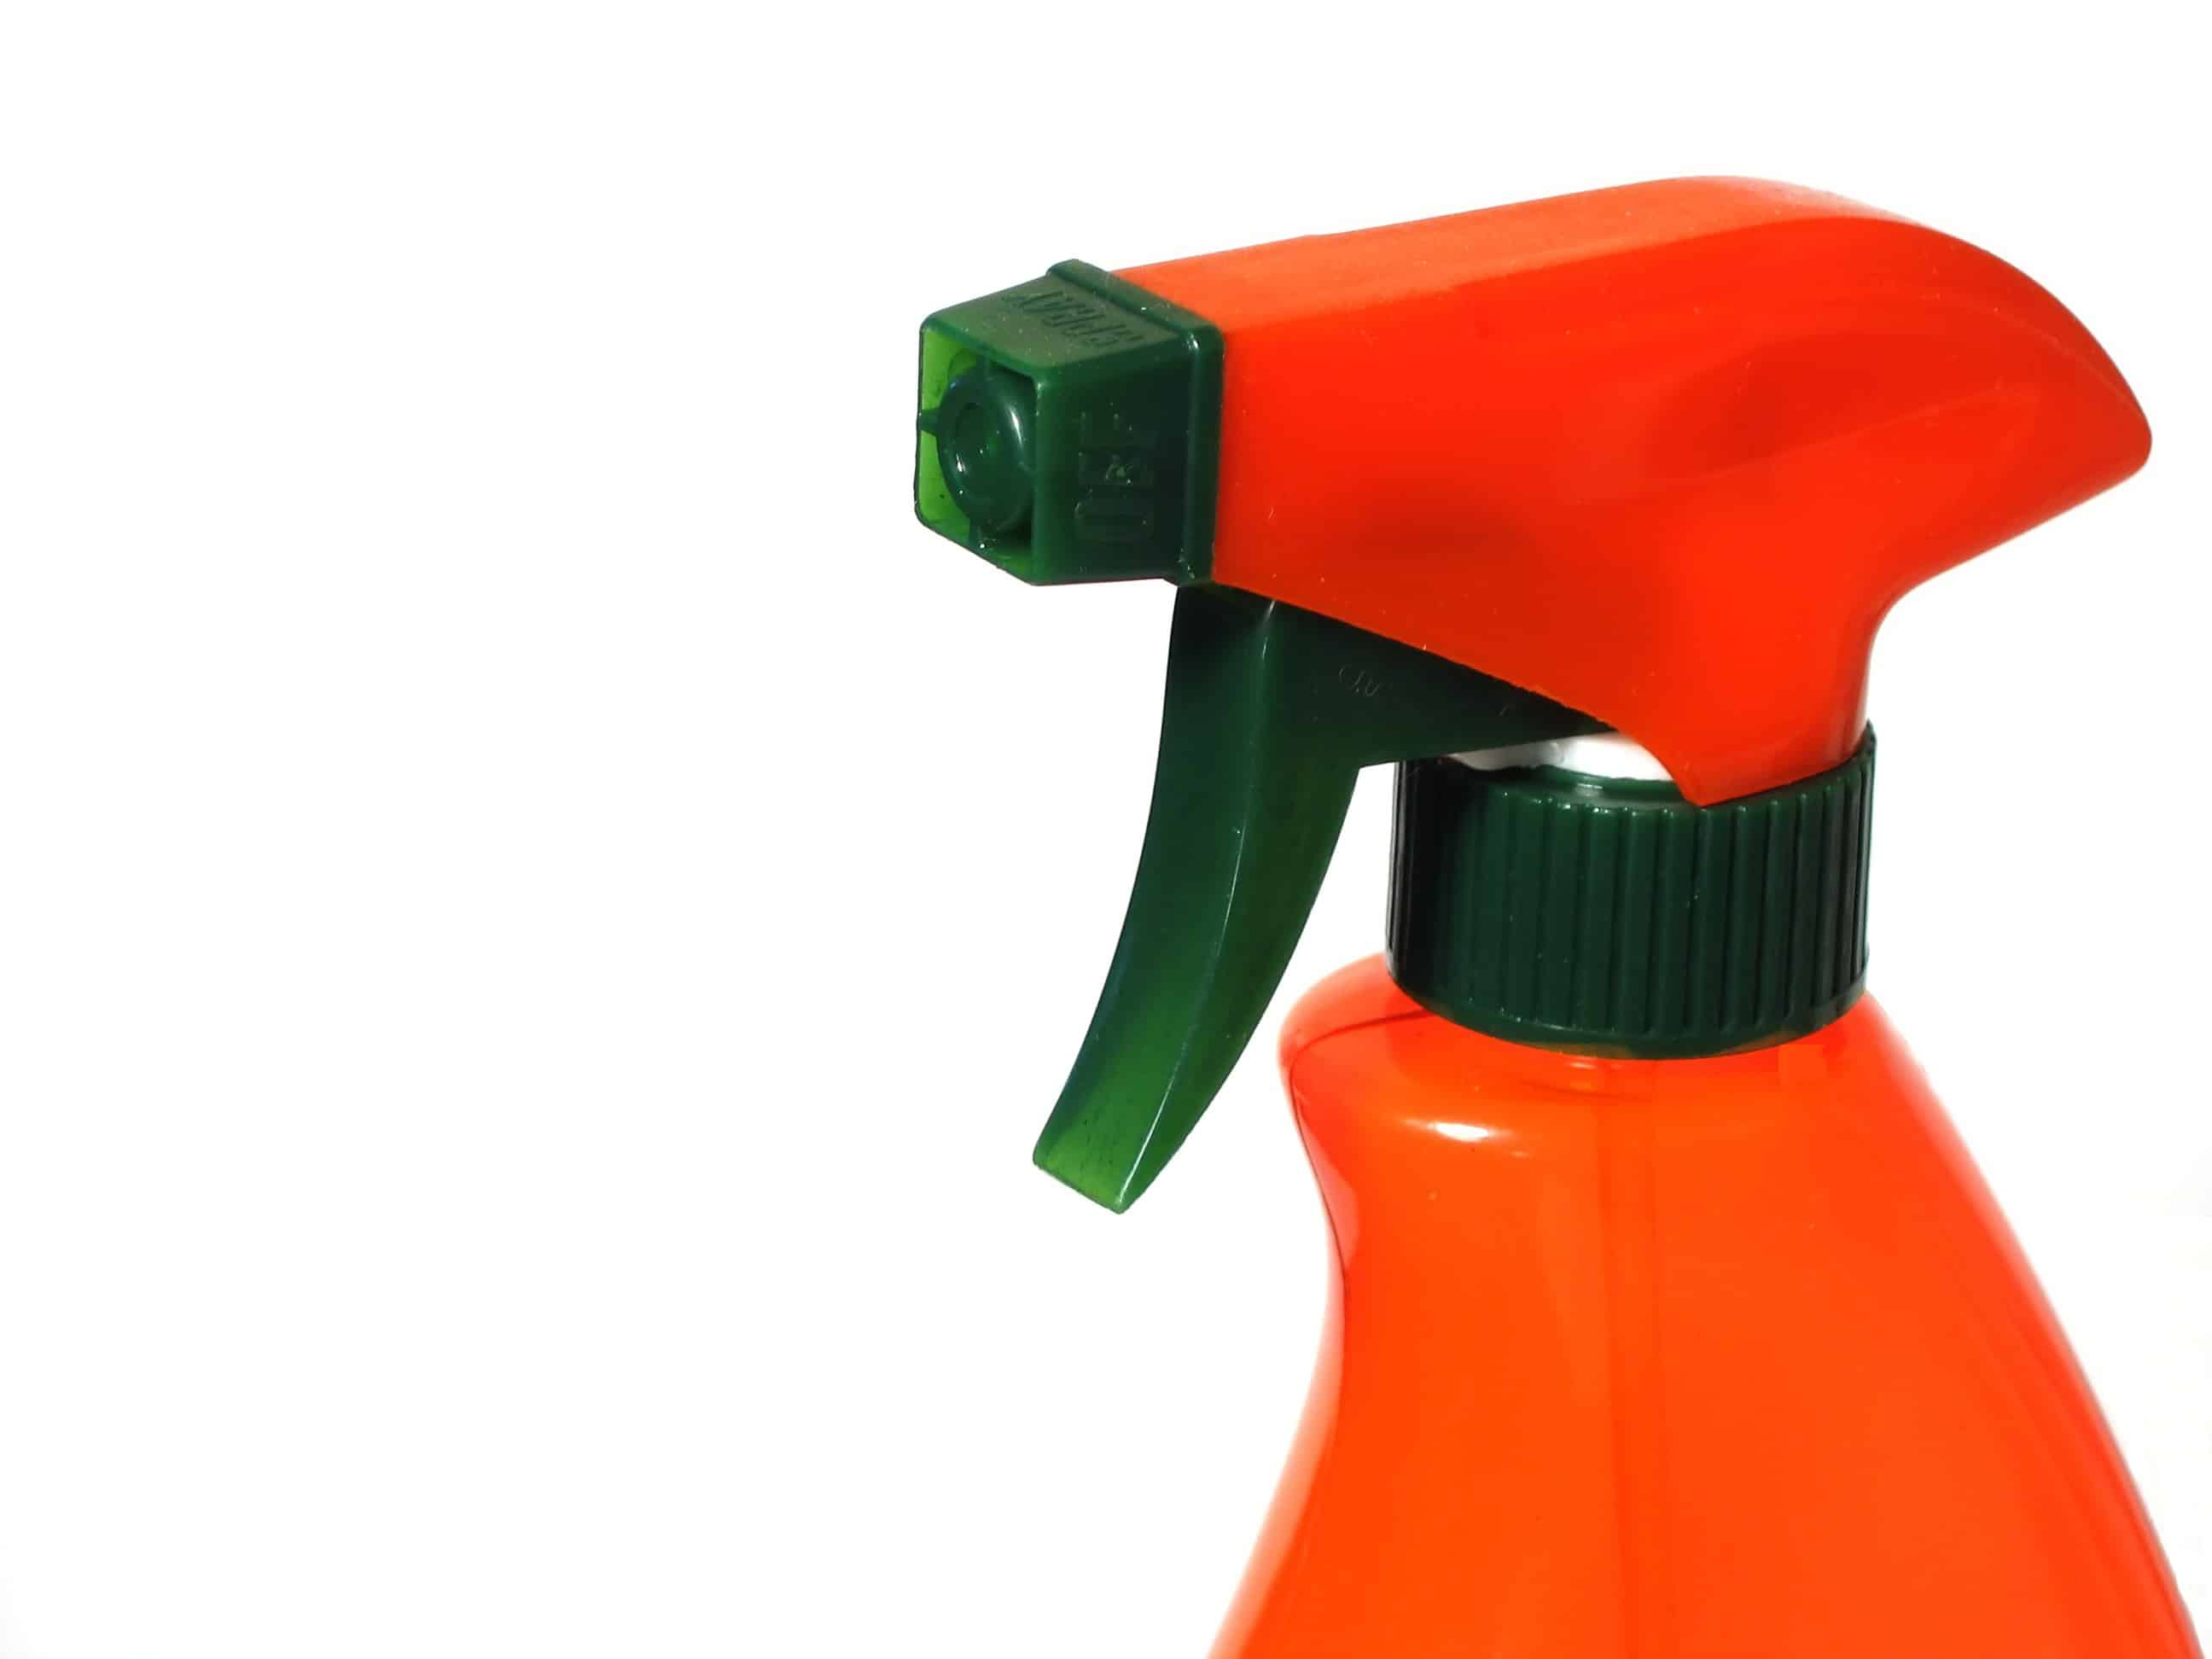 Where To Buy Wholesale Bottles And Trigger Sprayers